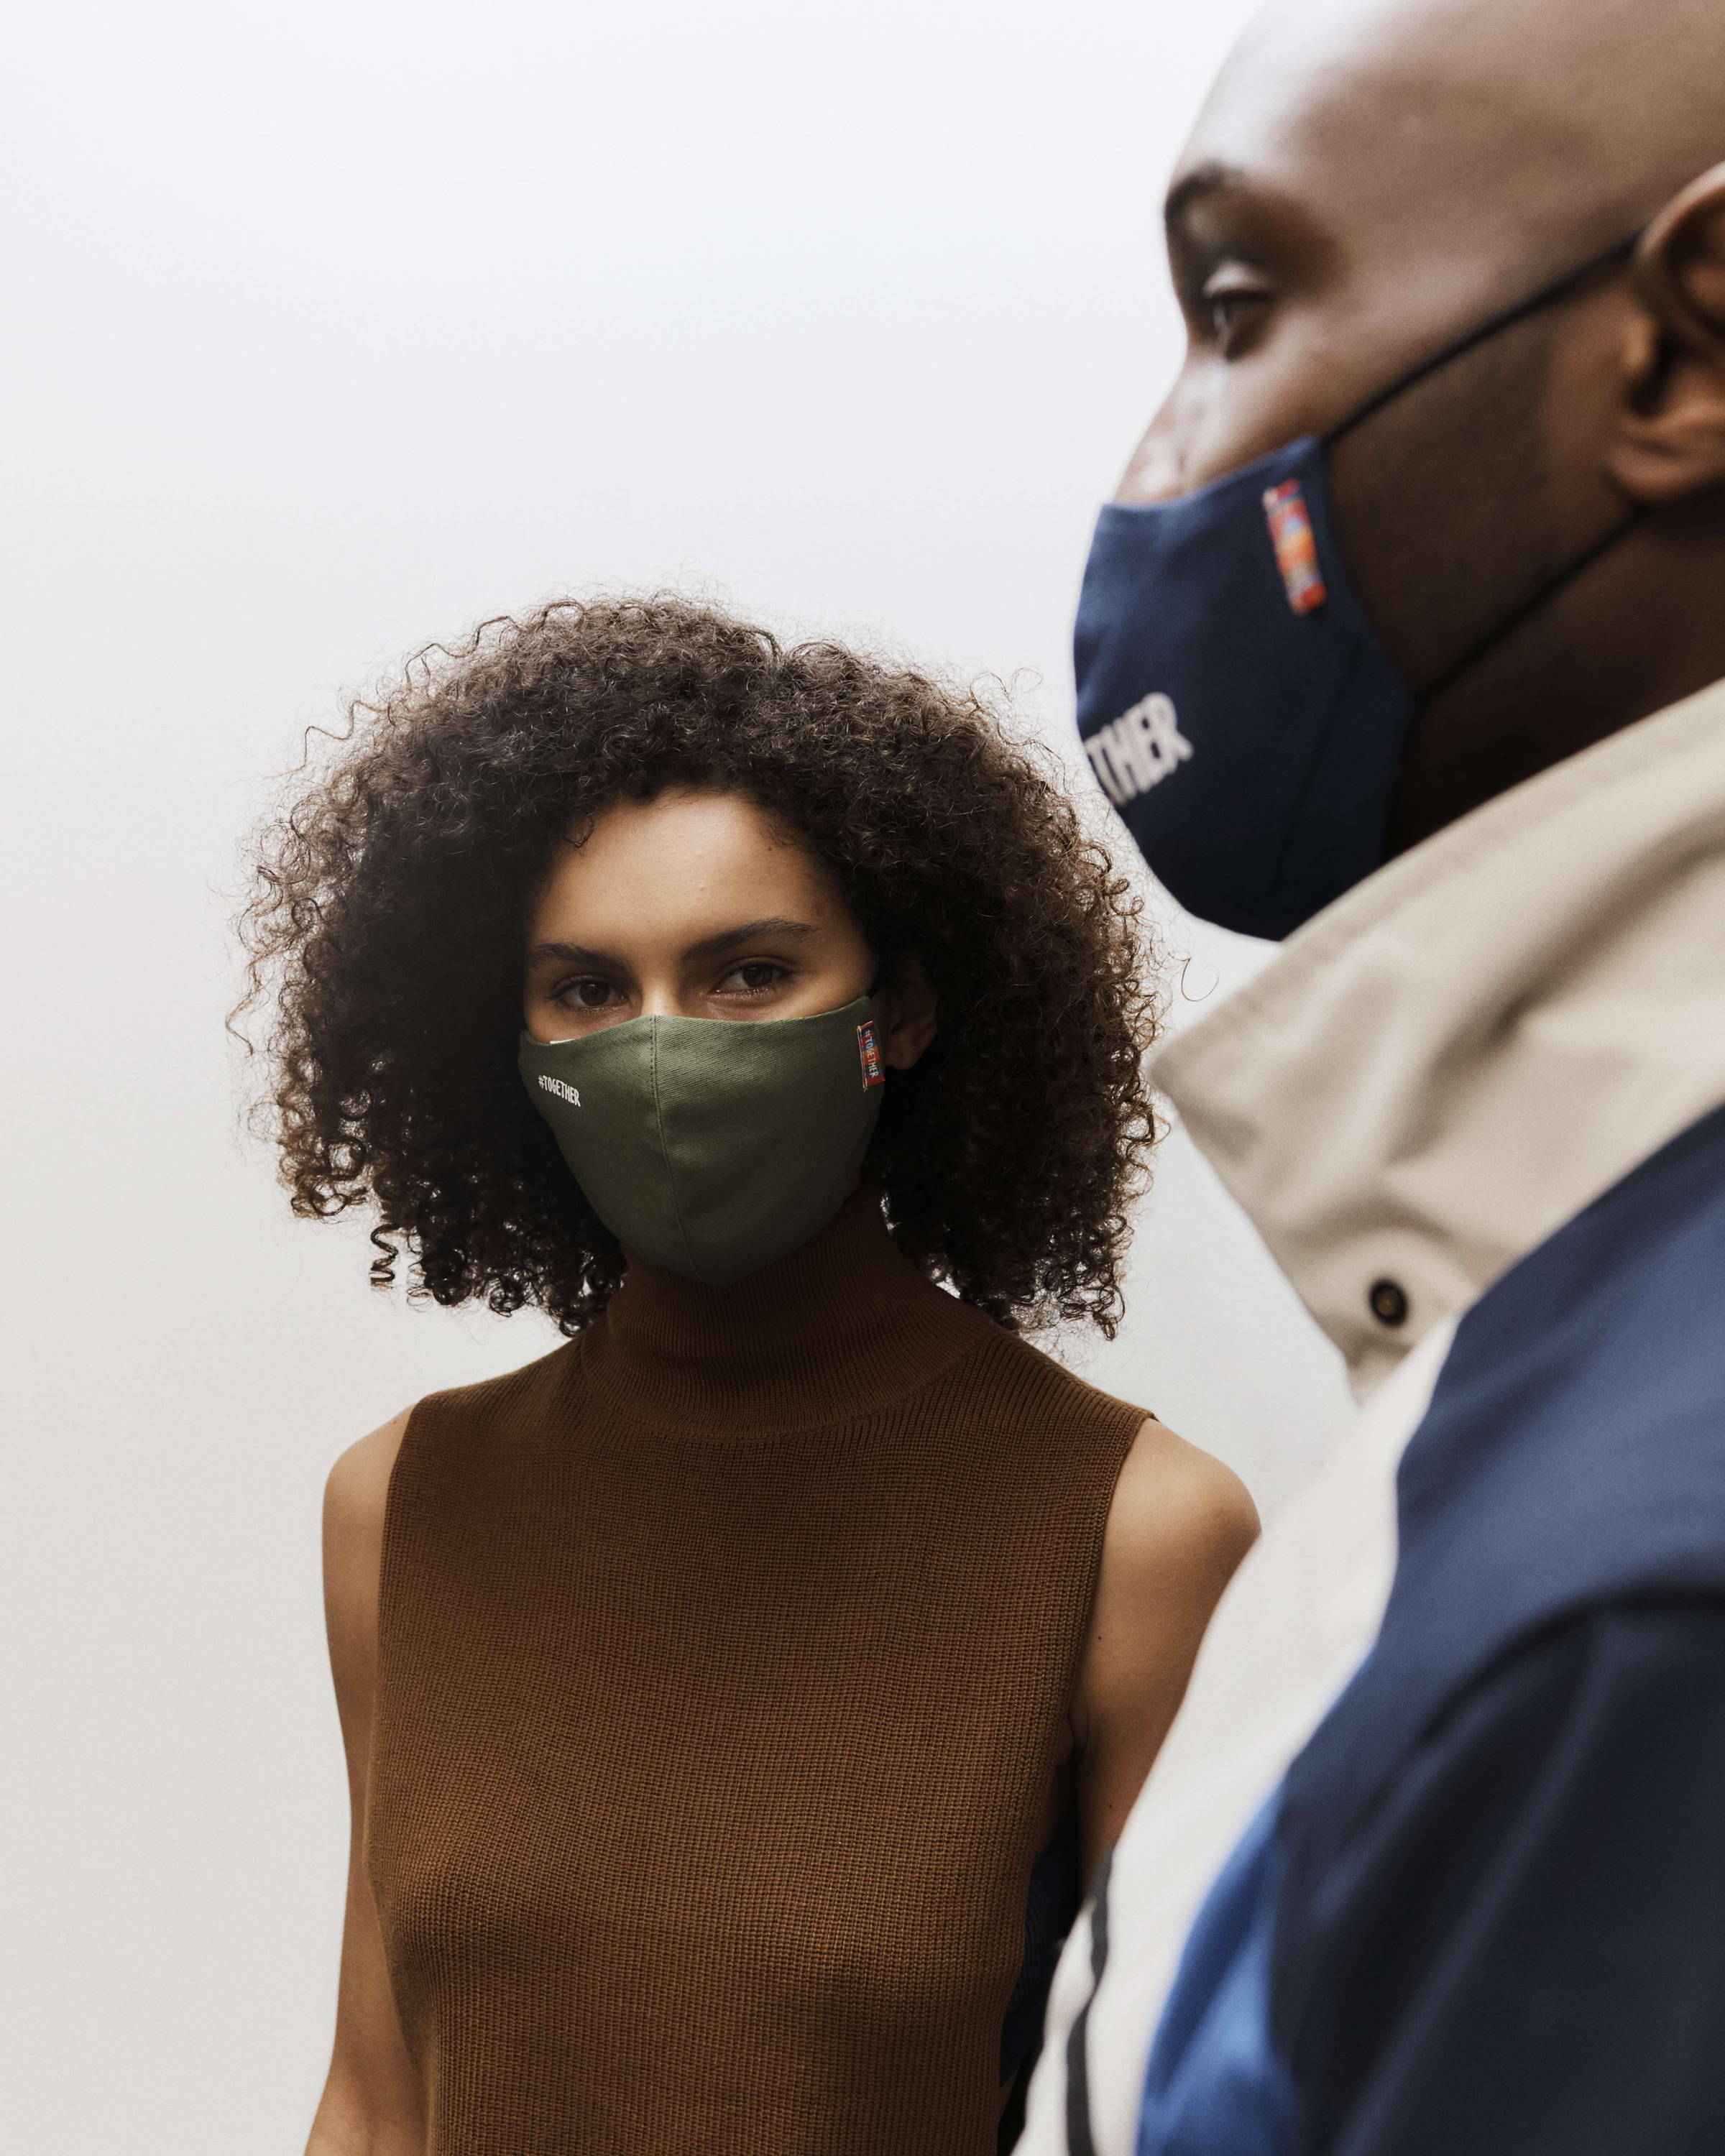 A man and a woman model wear olive green and navy blue organic cotton face masks